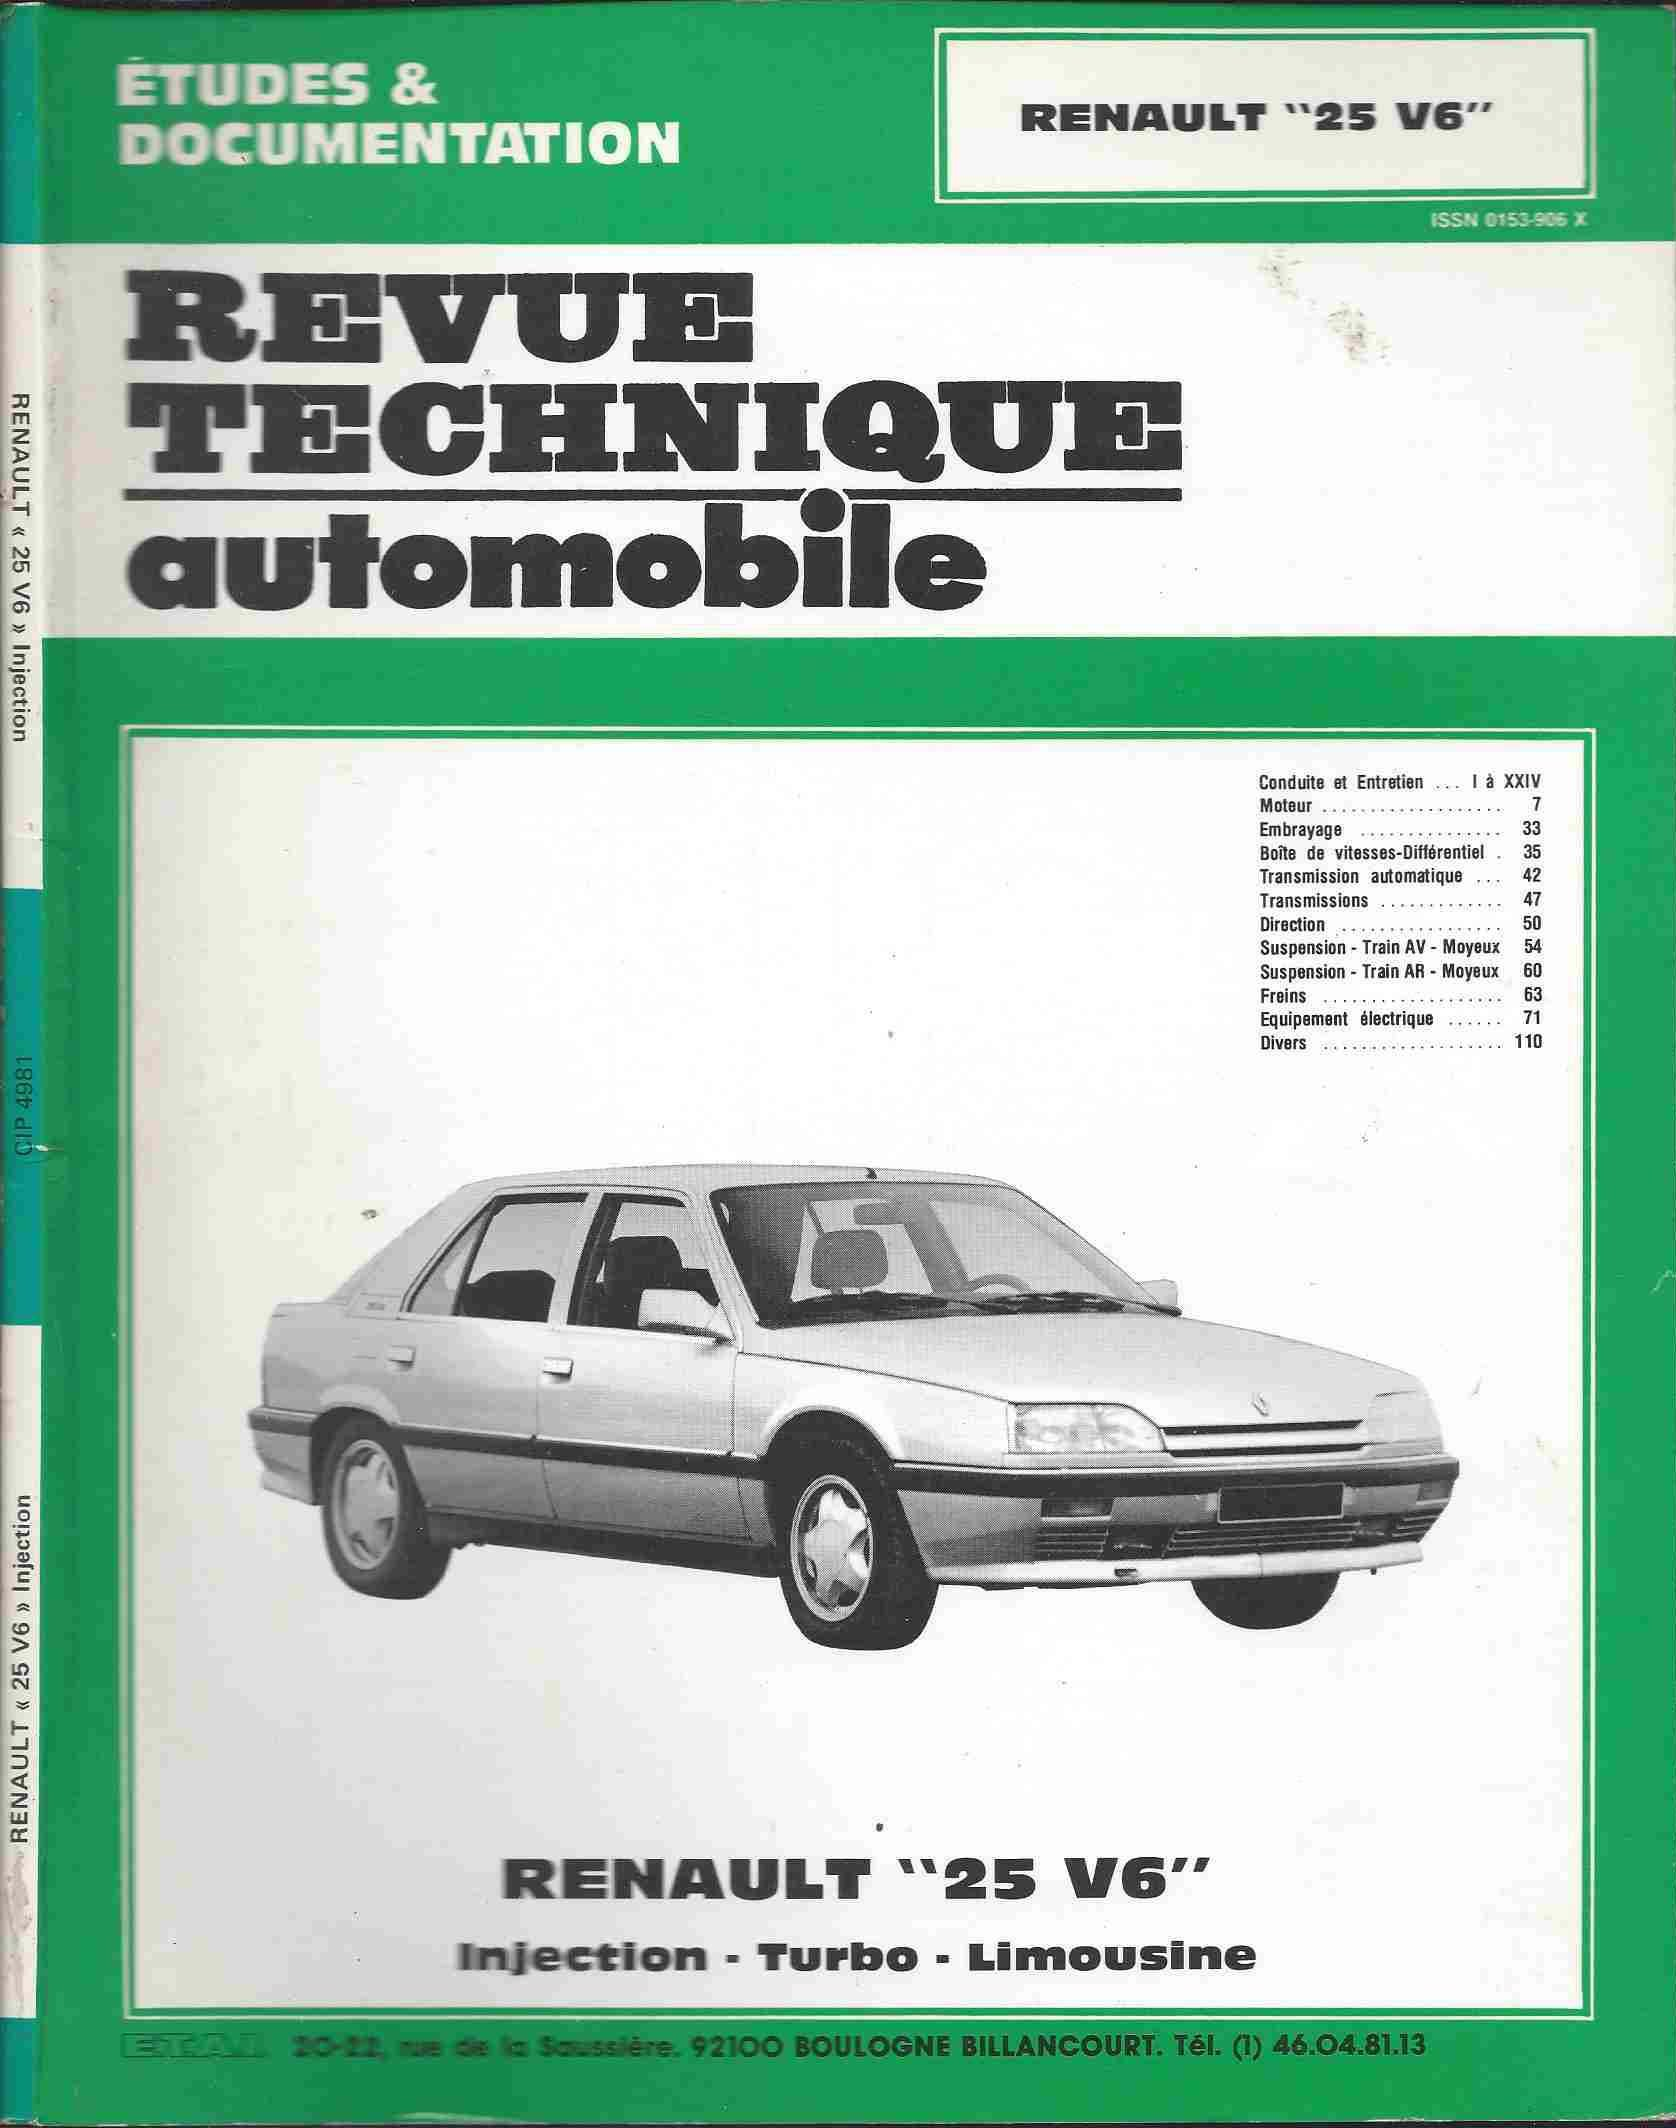 Revue technique automobile : renault 25 V6: Collectif: 9789470030007: Amazon.com: Books